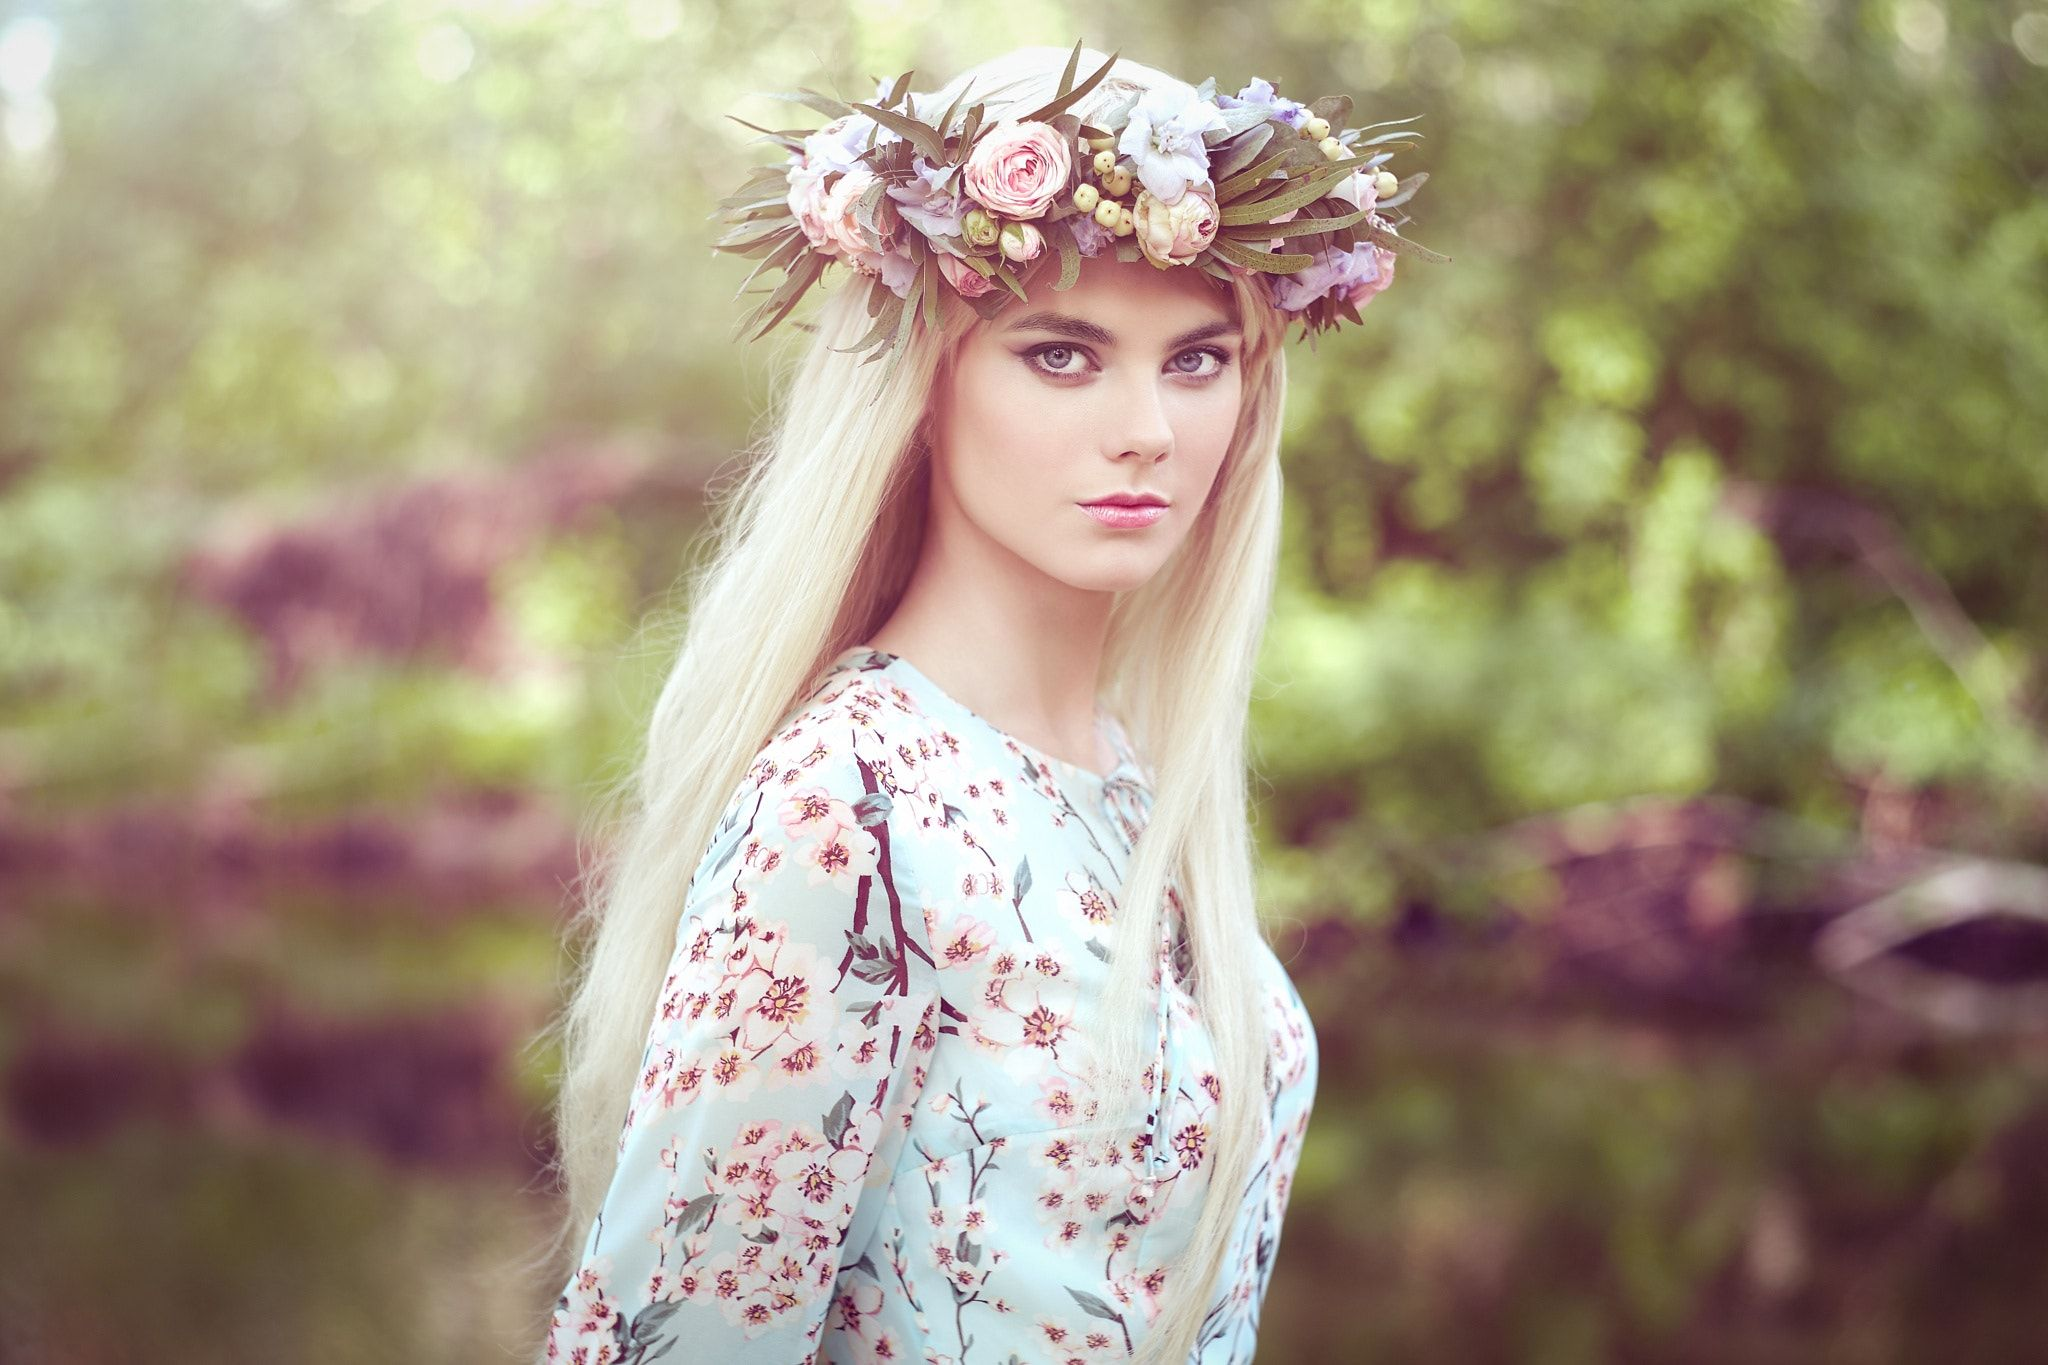 Beautiful blonde woman with flower wreath on her head beautiful beautiful blonde woman with flower wreath on her head beautiful blonde woman with flower wreath izmirmasajfo Image collections